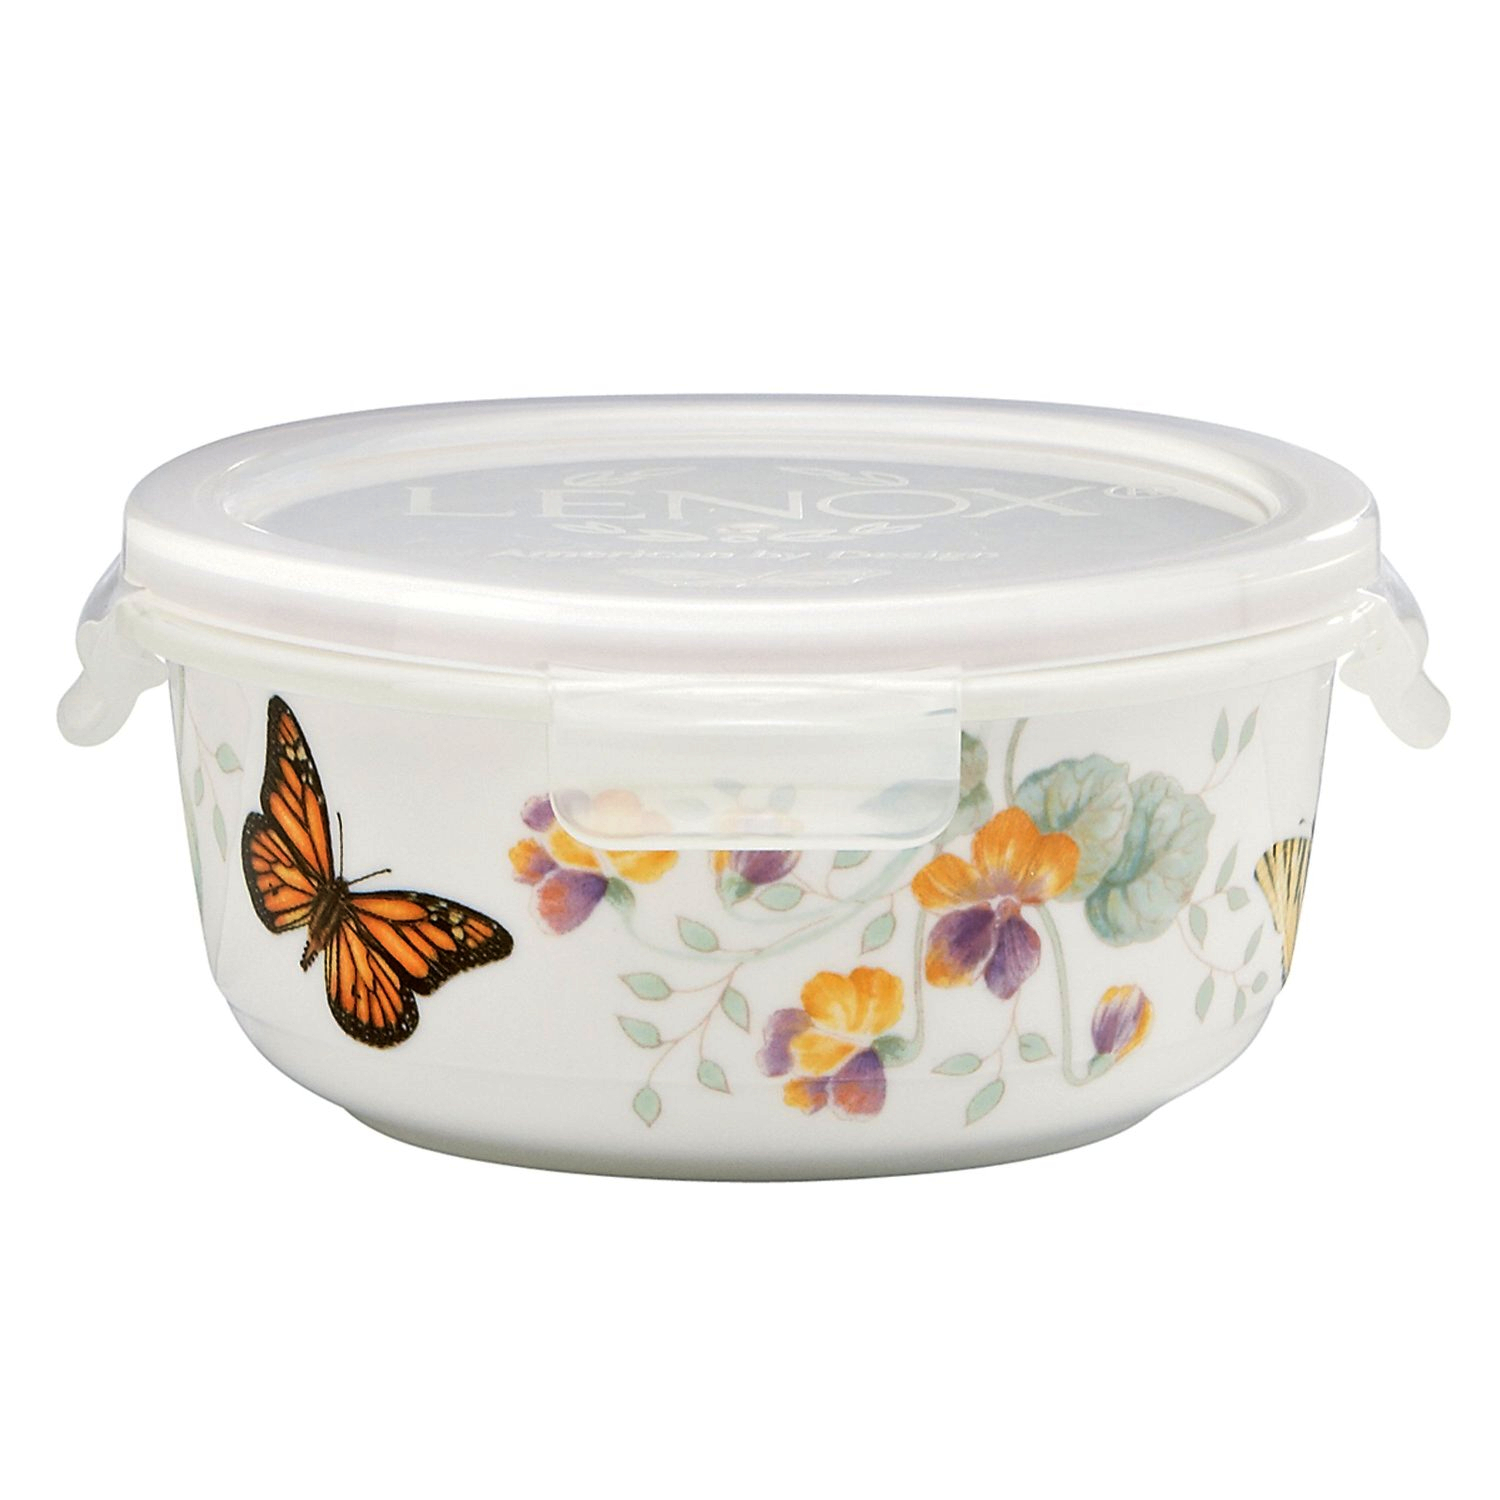 Lenox Butterfly Meadow 5.75 Inch Round Serve and Store Container